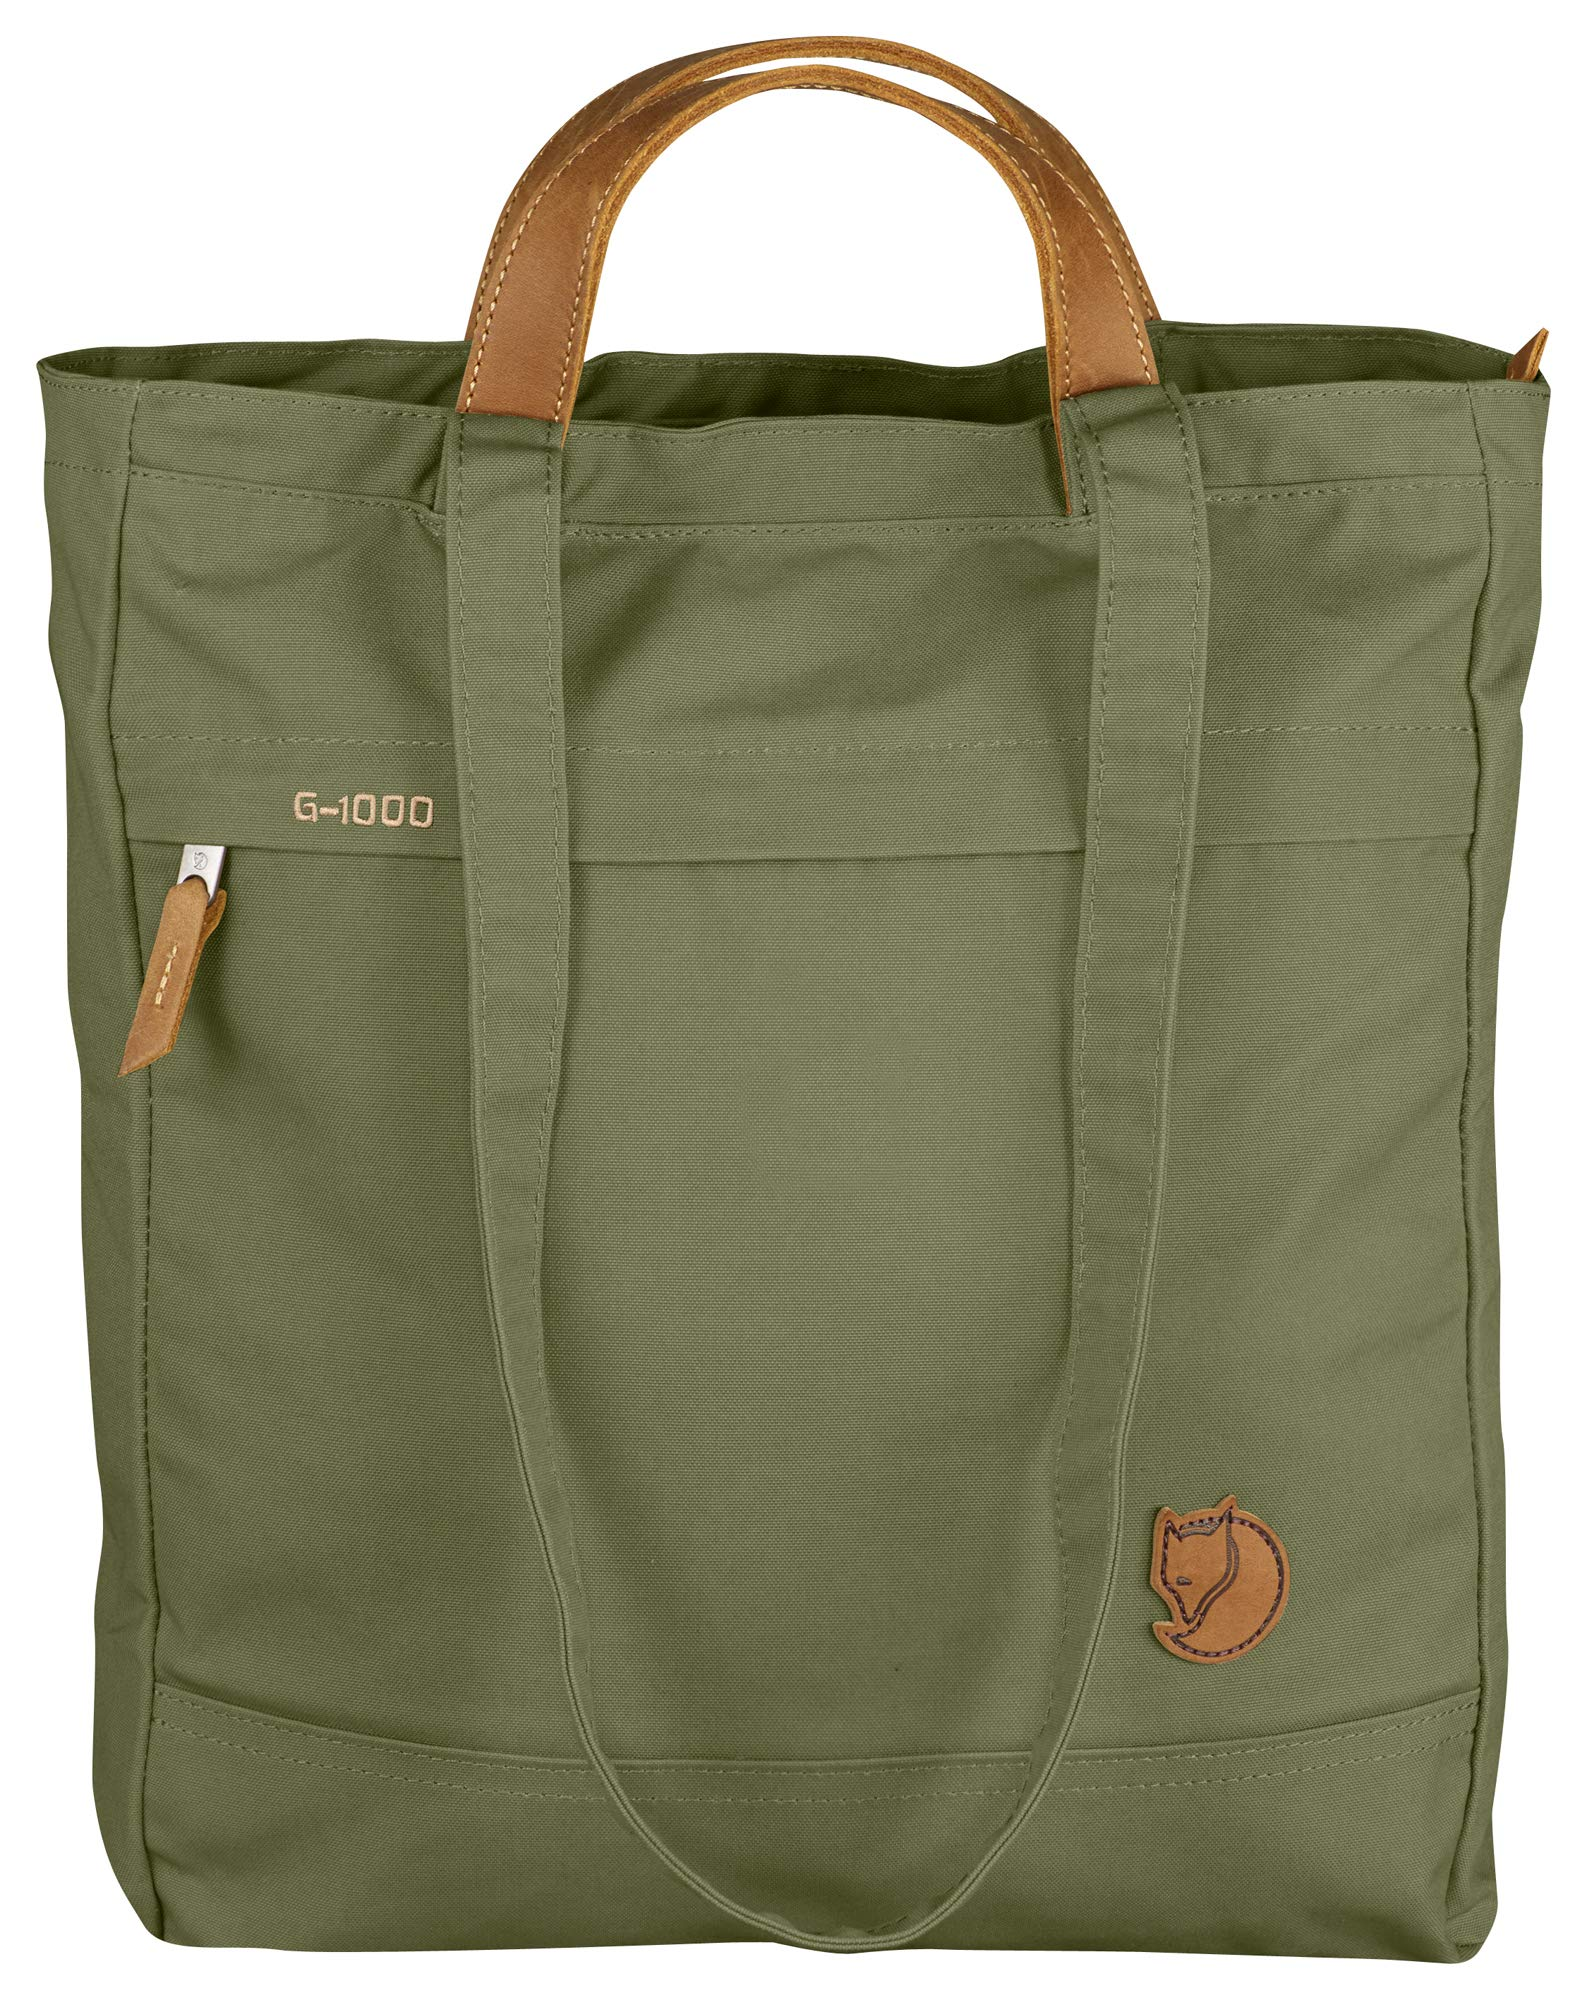 Fjallraven - Totepack No. 1, Green